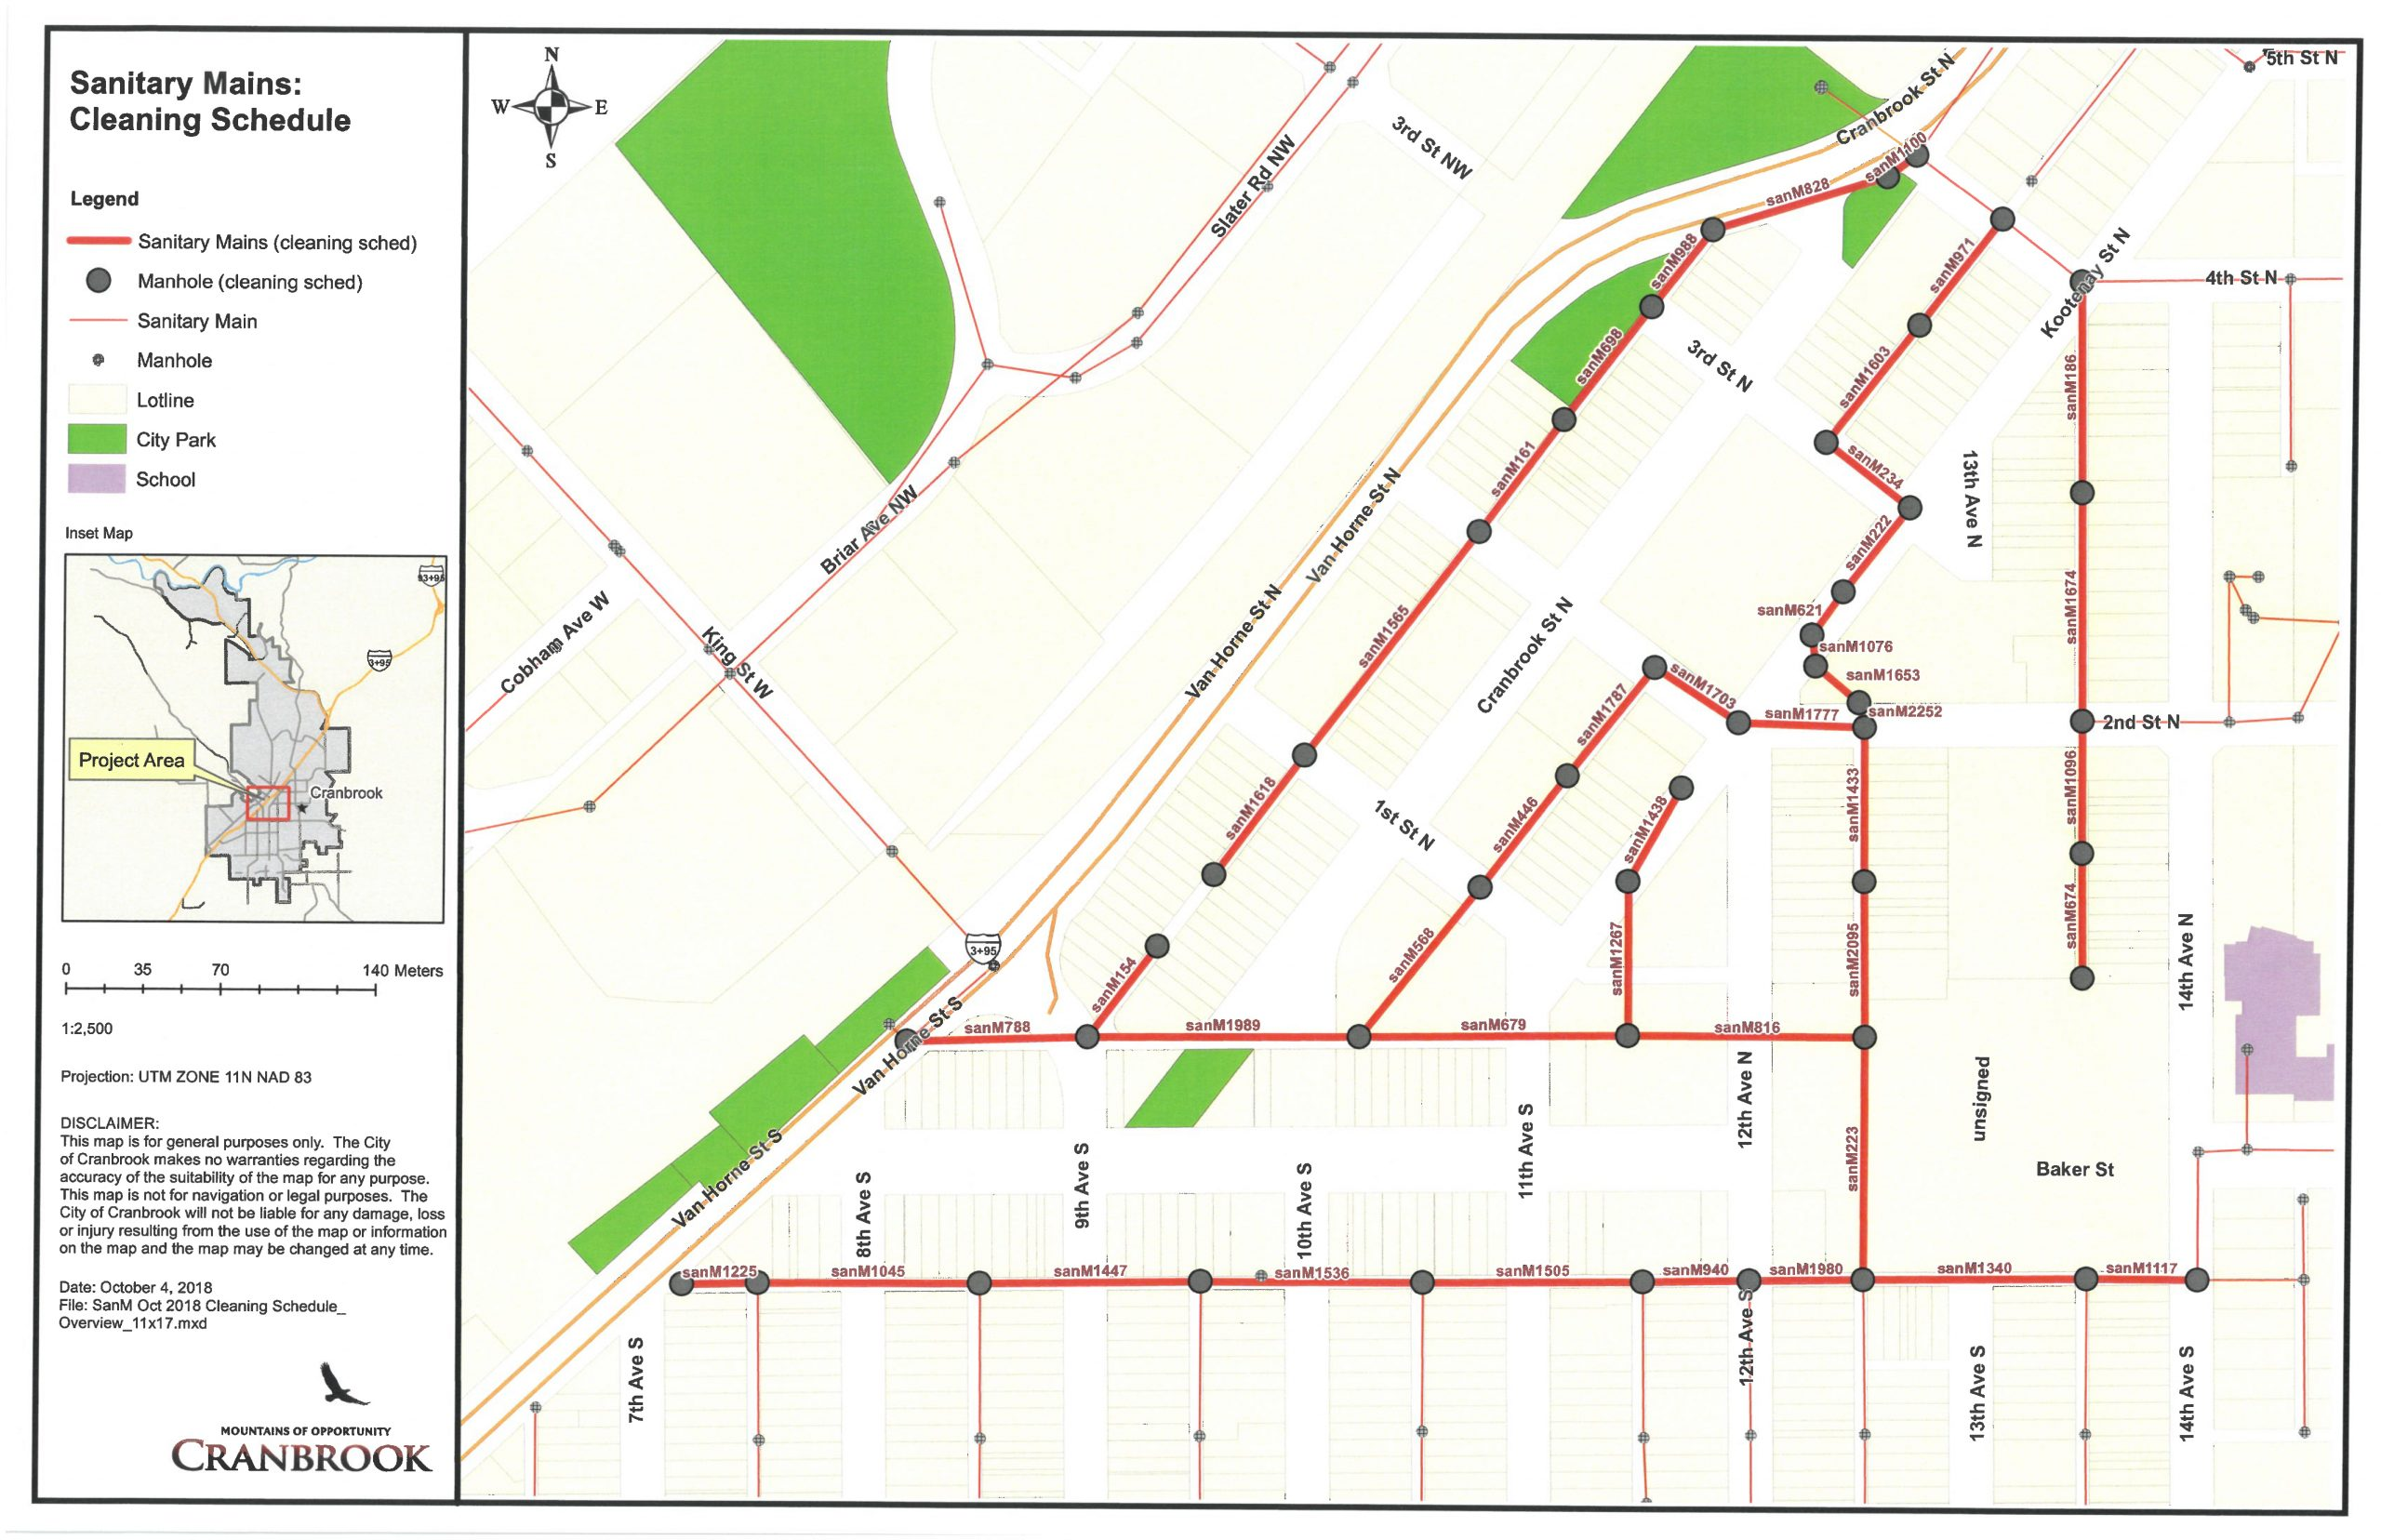 City of Cranbrook to begin sanitary sewer cleaning operations this week